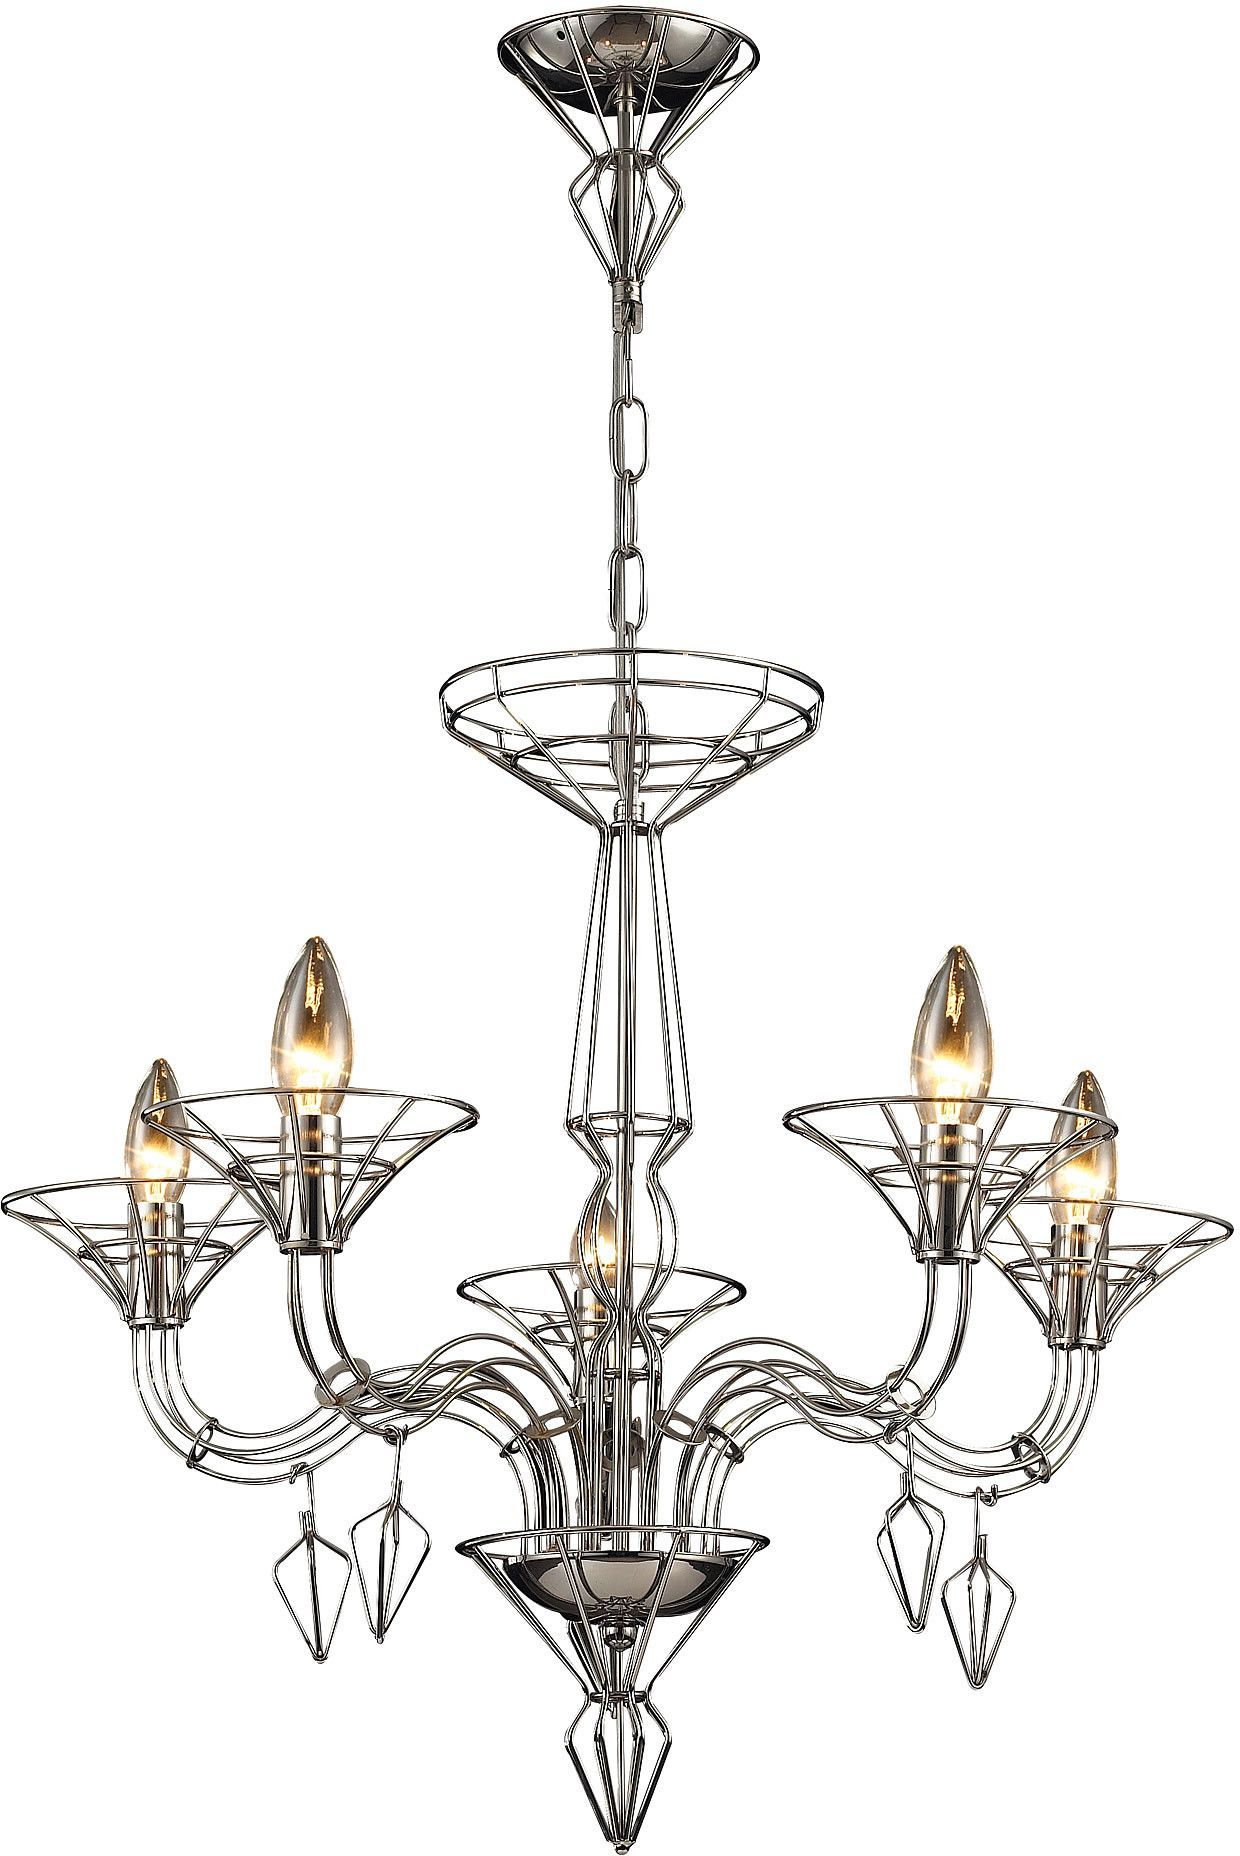 """0 016797>26""""""""w Couture 5 Light Chandelier Satin Nickel With Throughout Hesse 5 Light Candle Style Chandeliers (View 12 of 30)"""